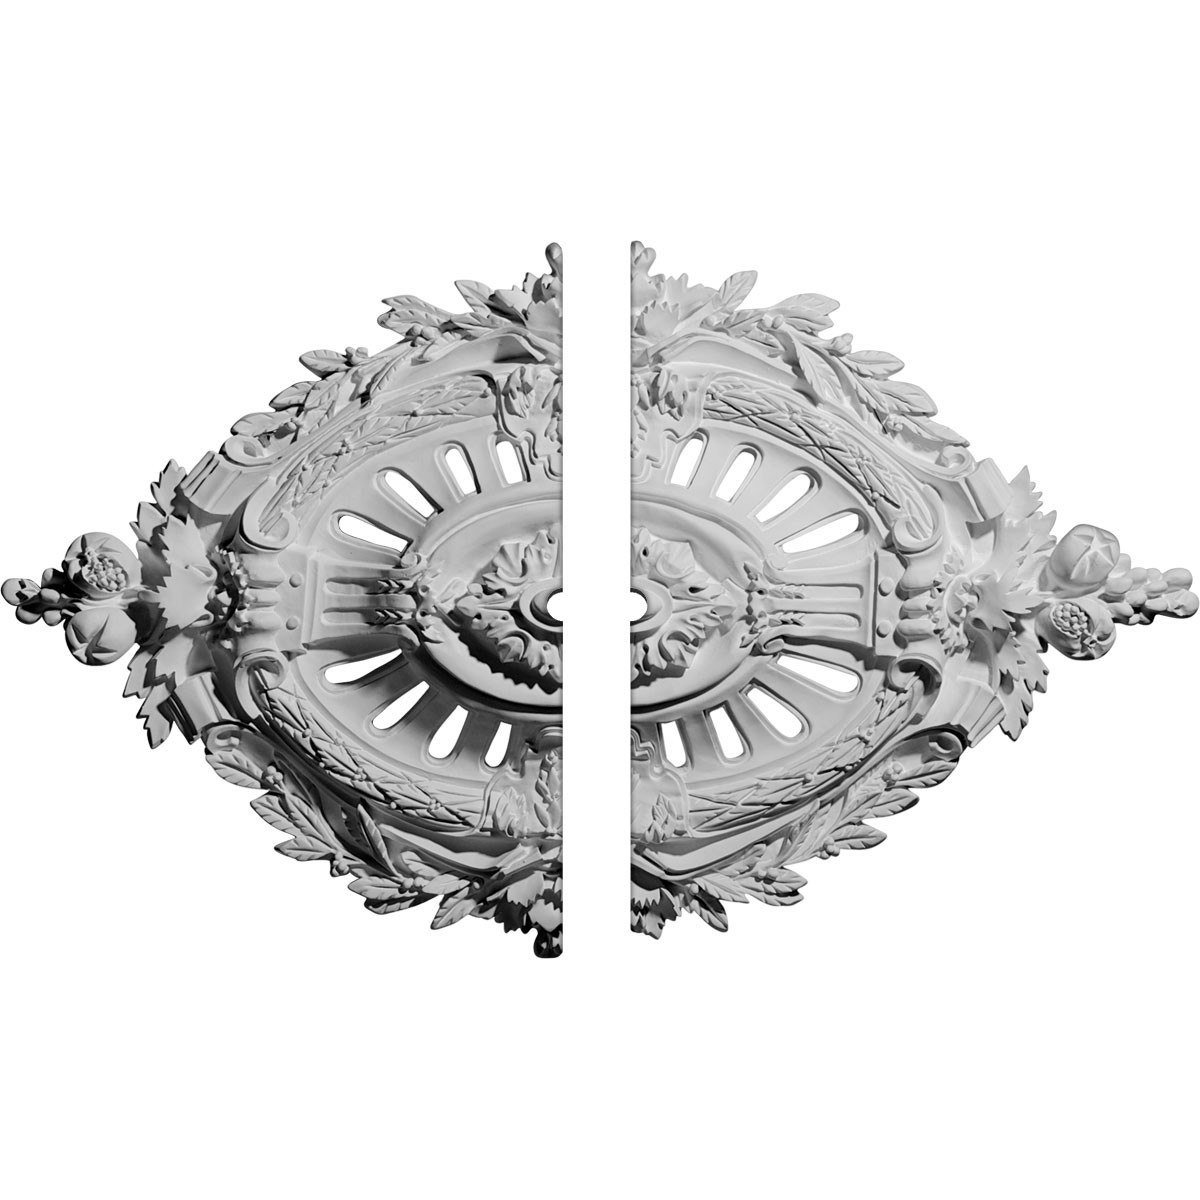 """EM-CM35X22AN2-01000 - 35 7/8""""W x 22 1/2""""H x 1""""ID x 4 3/8""""P Antonio Ceiling Medallion, Two Piece (Fits Canopies up to 1"""")"""